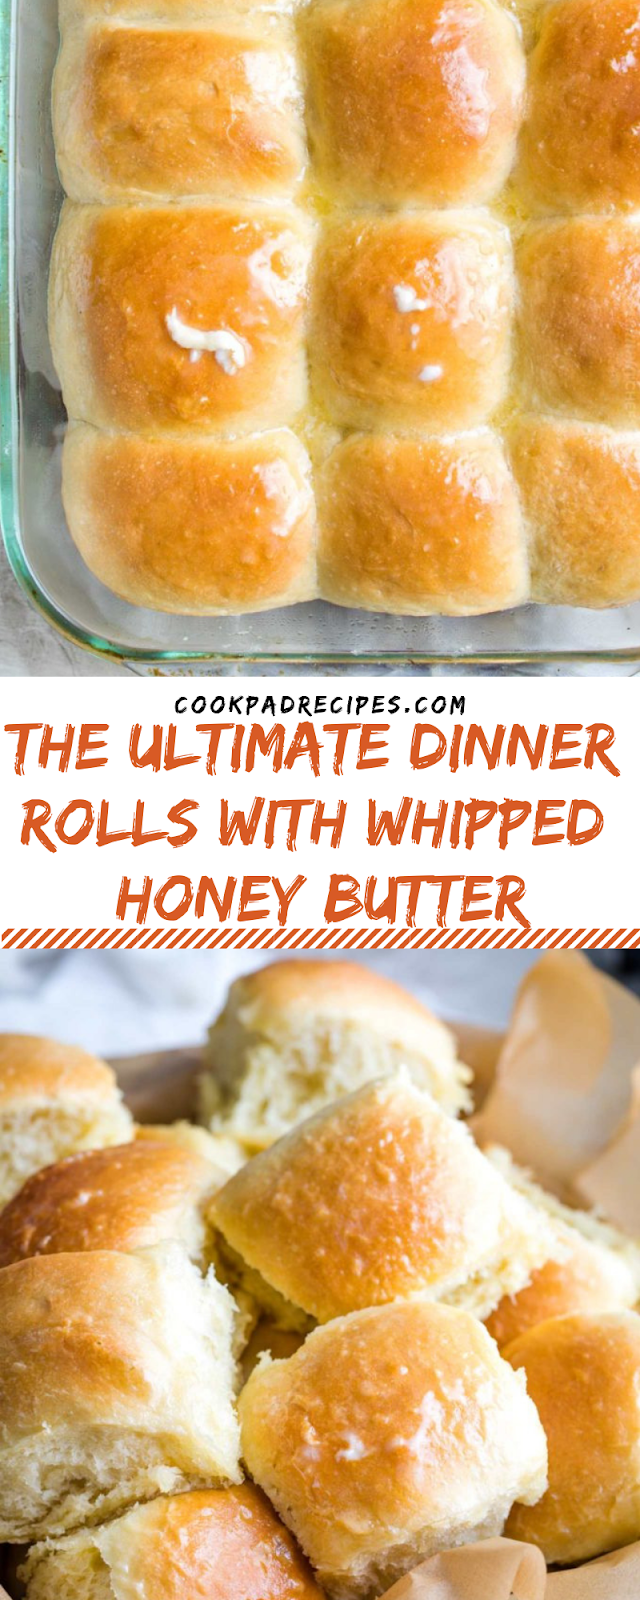 THE ULTIMATE DINNER ROLLS WITH WHIPPED HONEY BUTTER